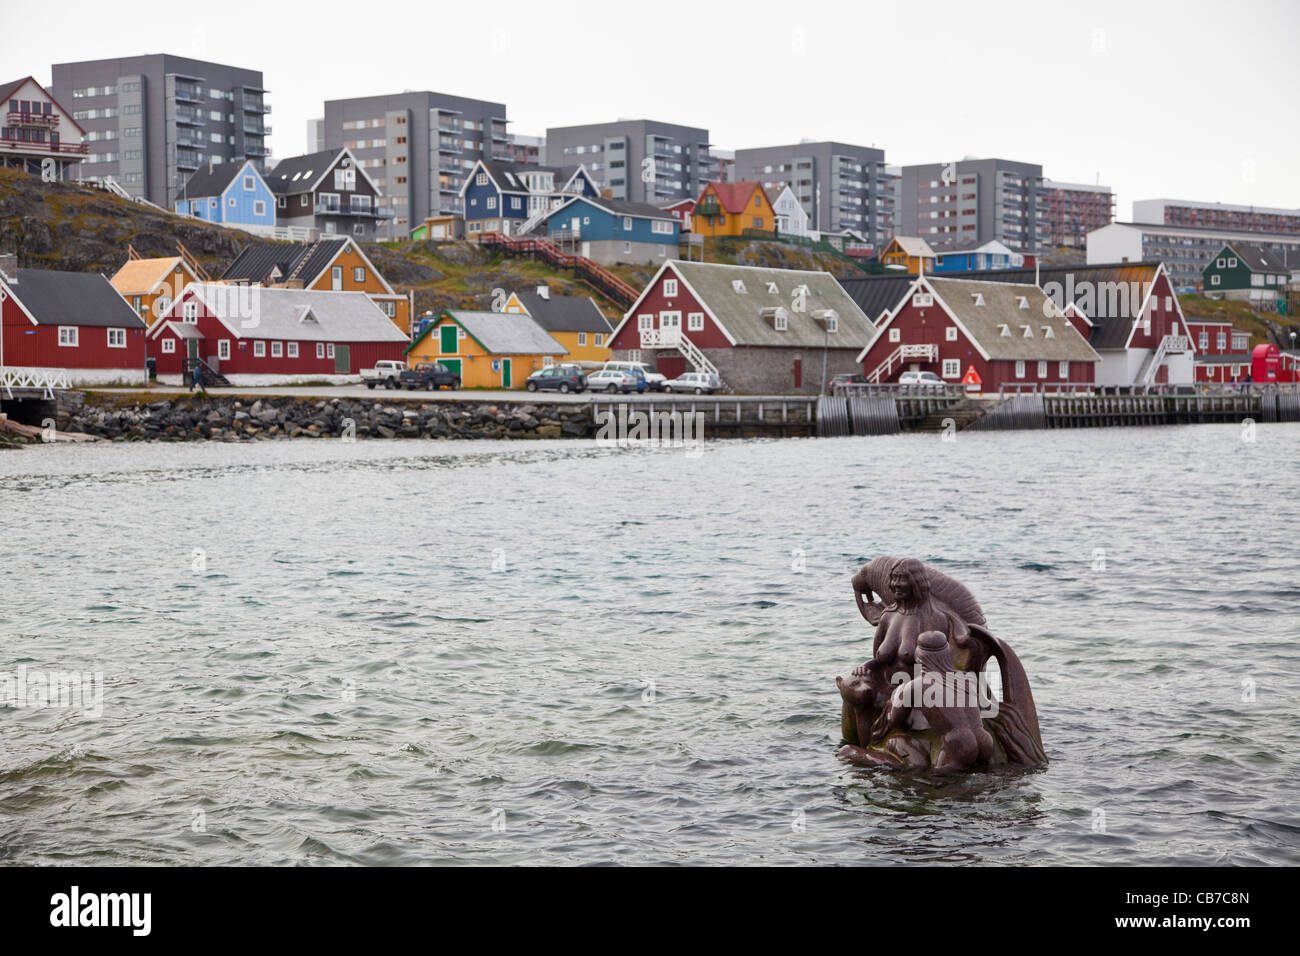 sculpture of Sedna, Inuit goddess of the sea, Nuuk, Greenland - Stock Image